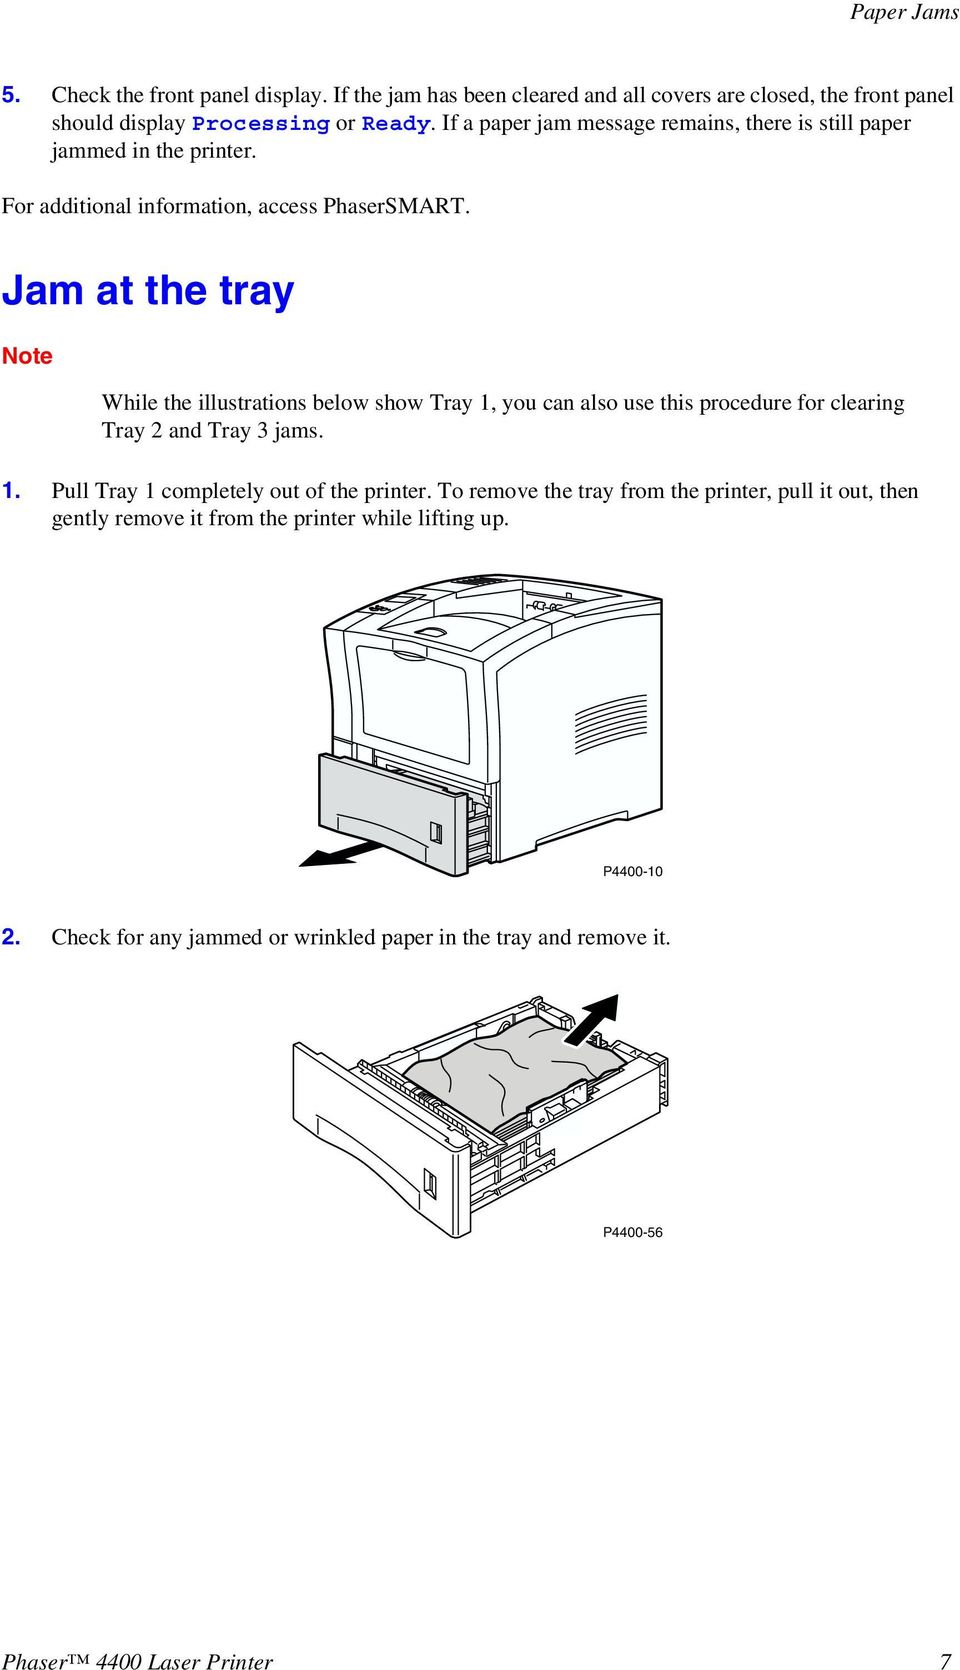 Jam at the tray Note While the illustrations below show Tray 1, you can also use this procedure for clearing Tray 2 and Tray 3 jams. 1. Pull Tray 1 completely out of the printer.